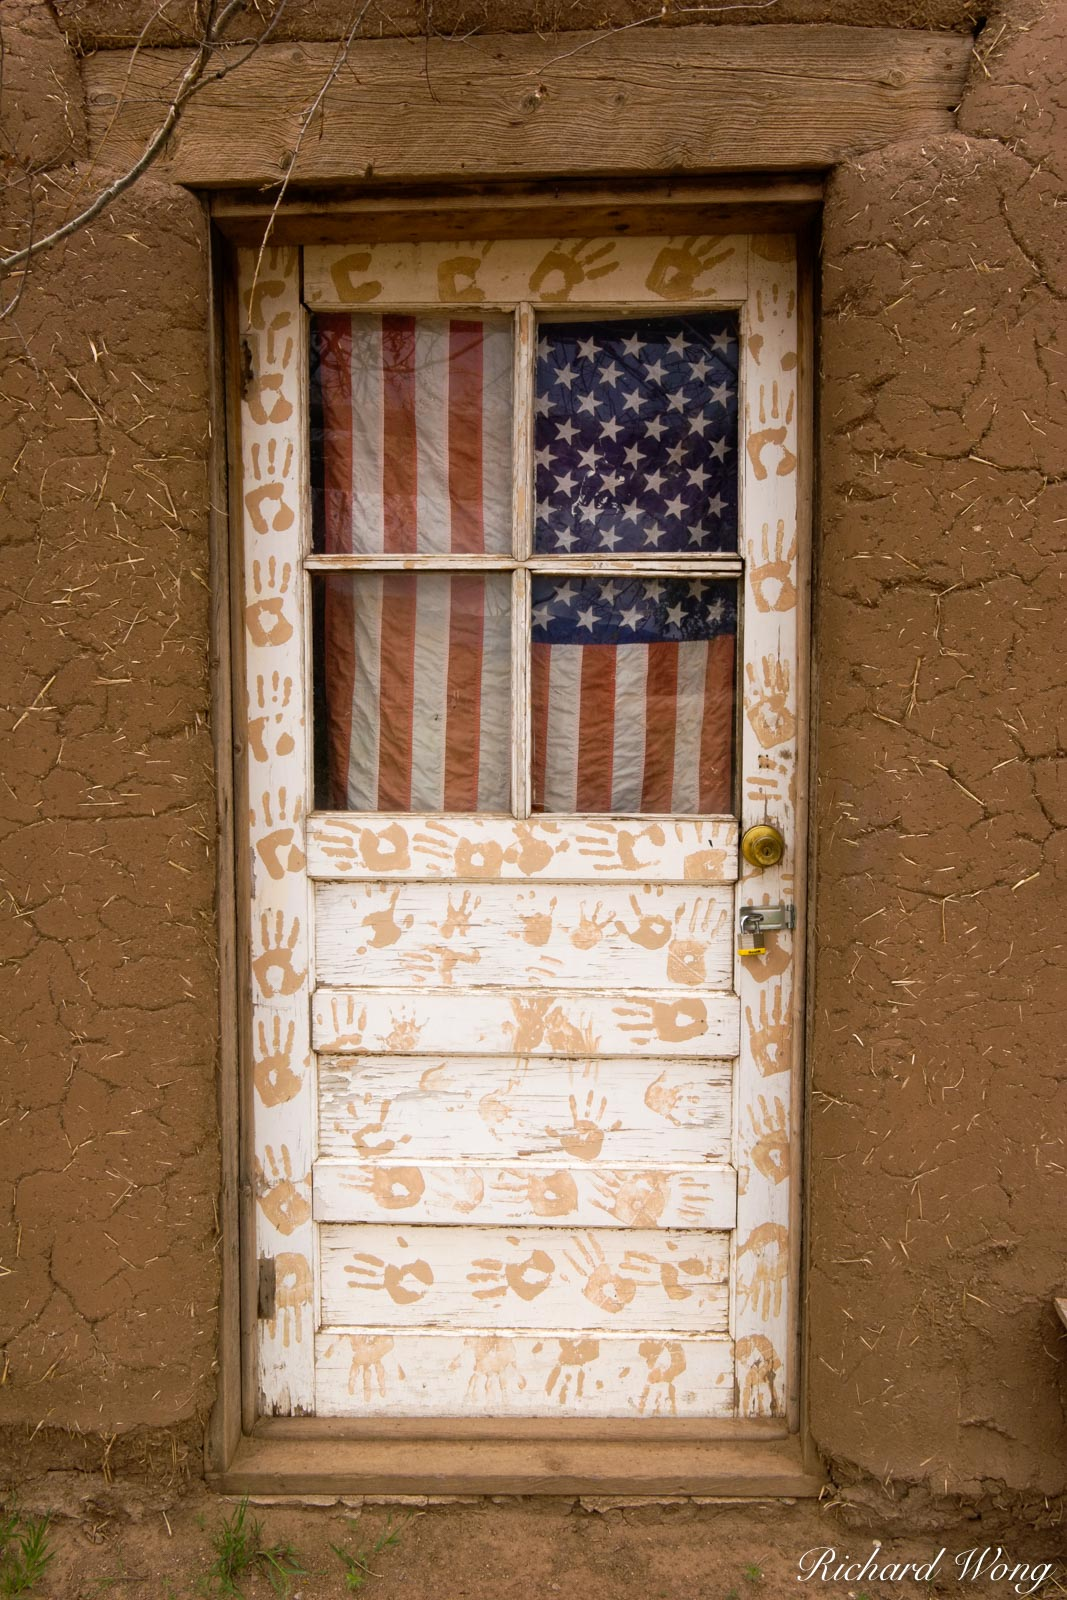 48 Star U.S. Flag Hanging on Door, Taos Pueblo, New Mexico, photo, photo